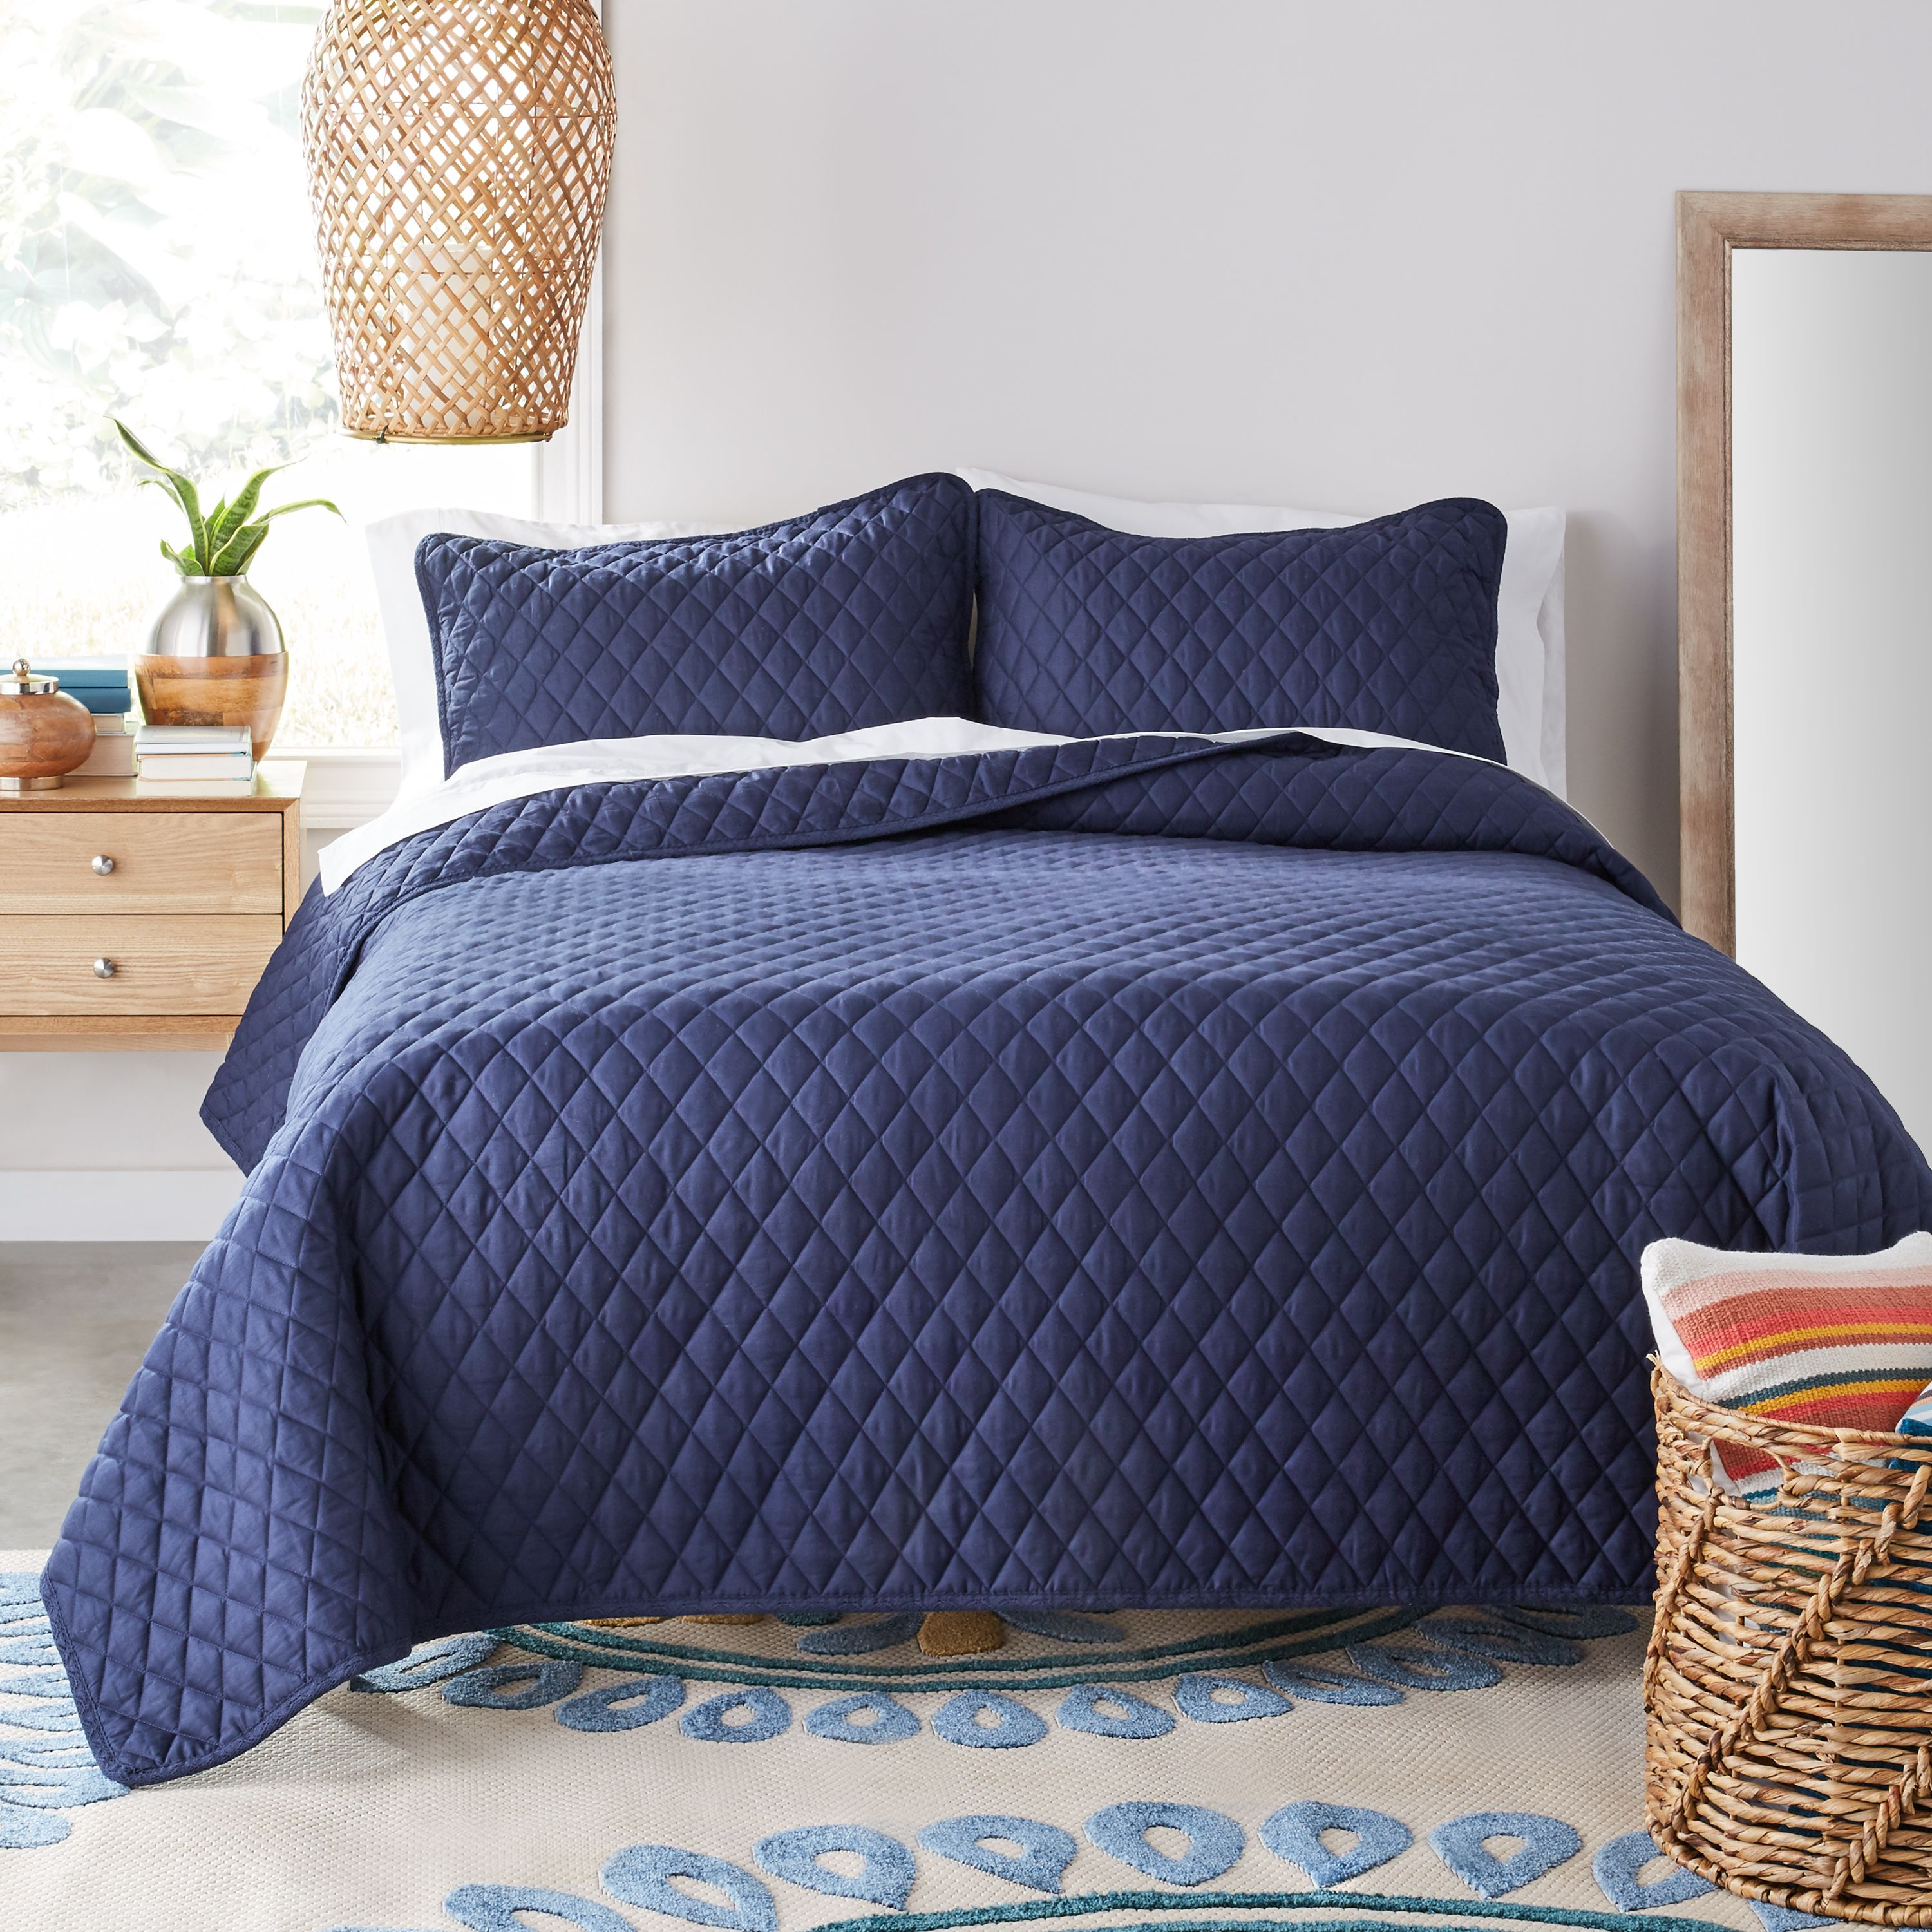 Better Homes & Gardens Navy Blue Diamond Crochet Quilt Set